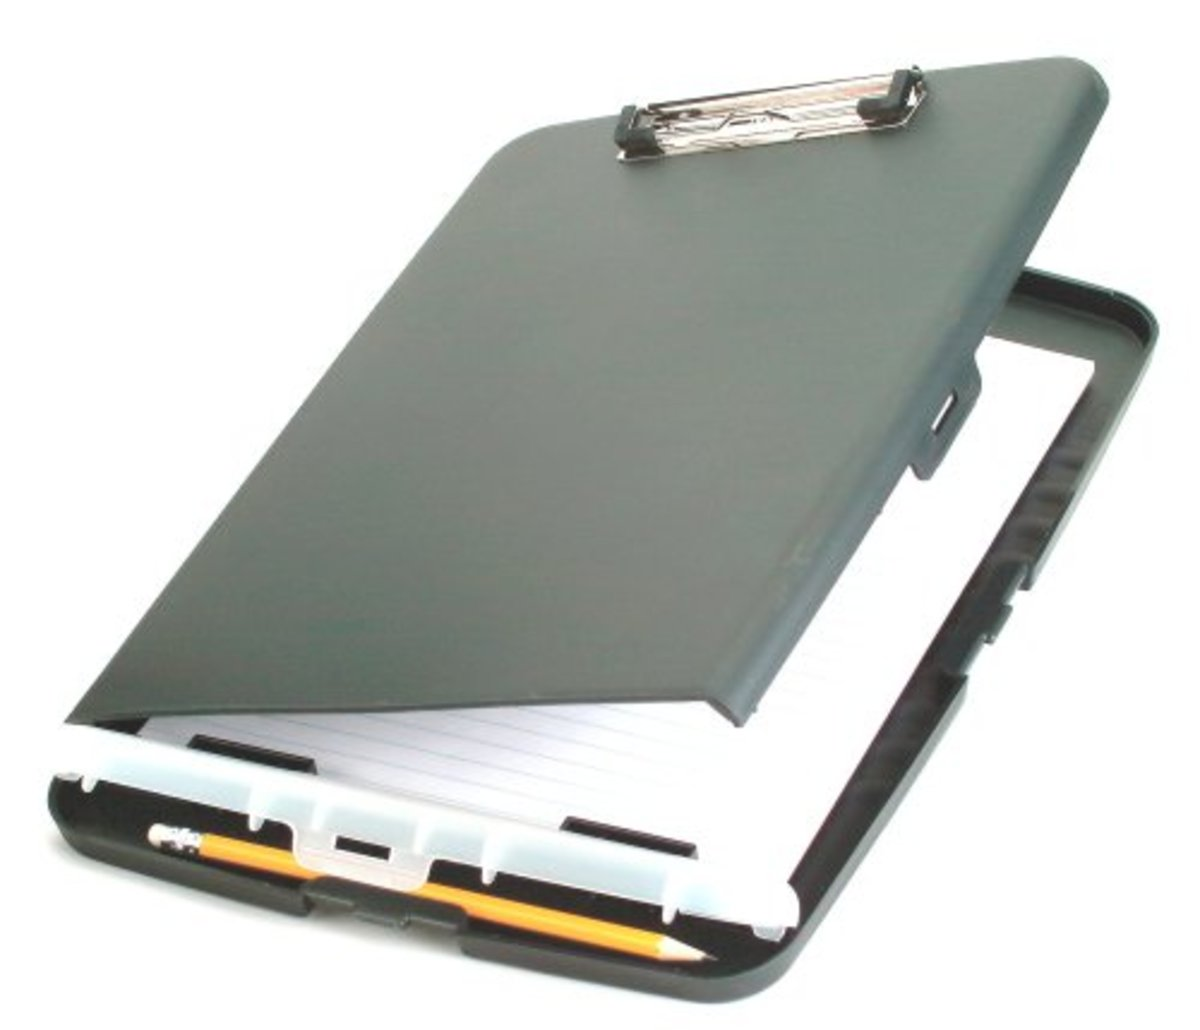 When open, this clipboard holds papers, brochures, or maps.